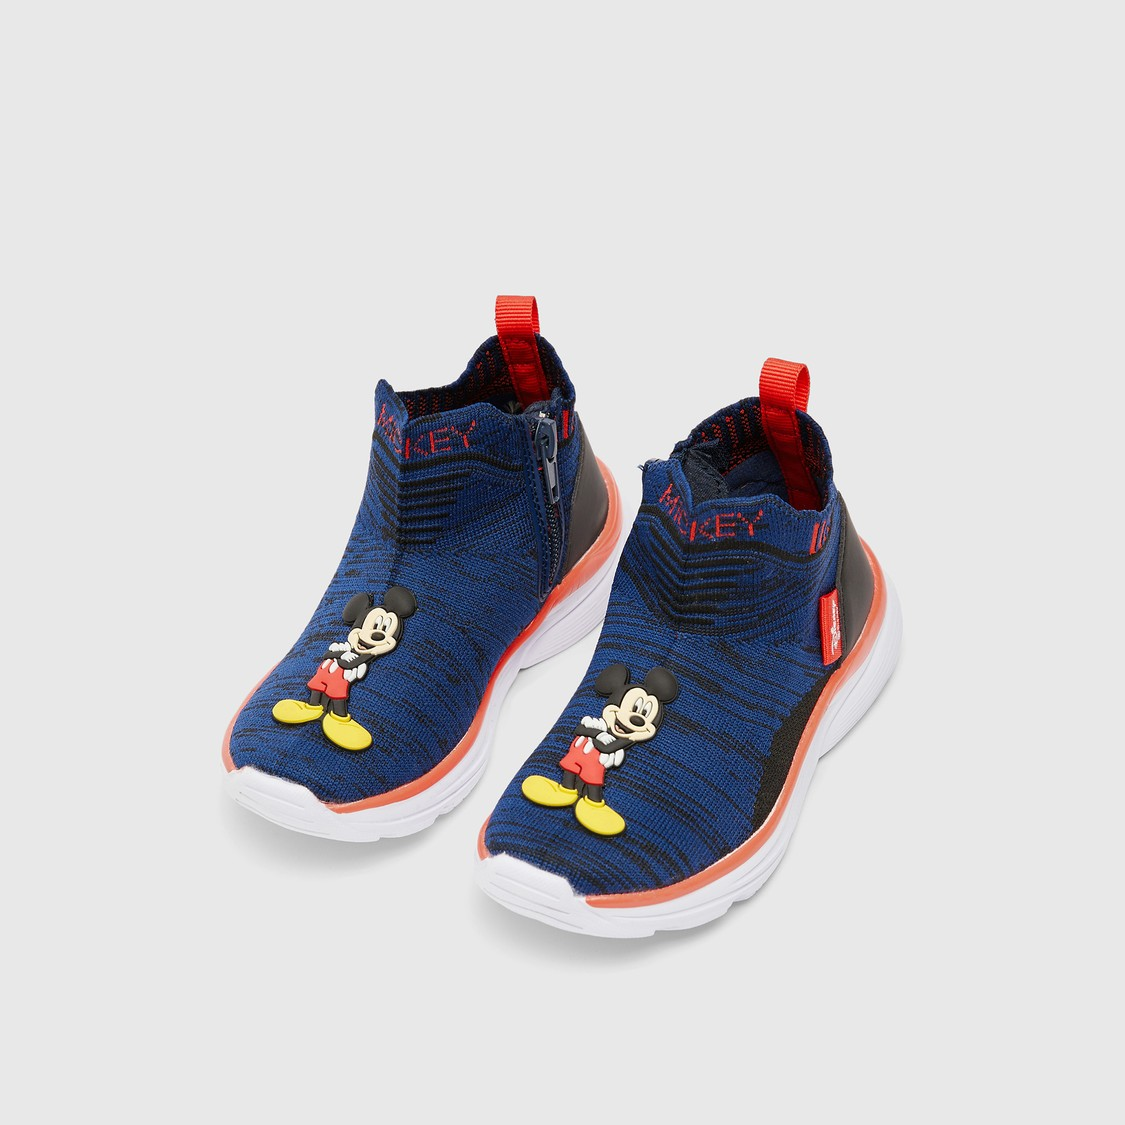 Textured Walking Shoes with Mickey Mouse Applique